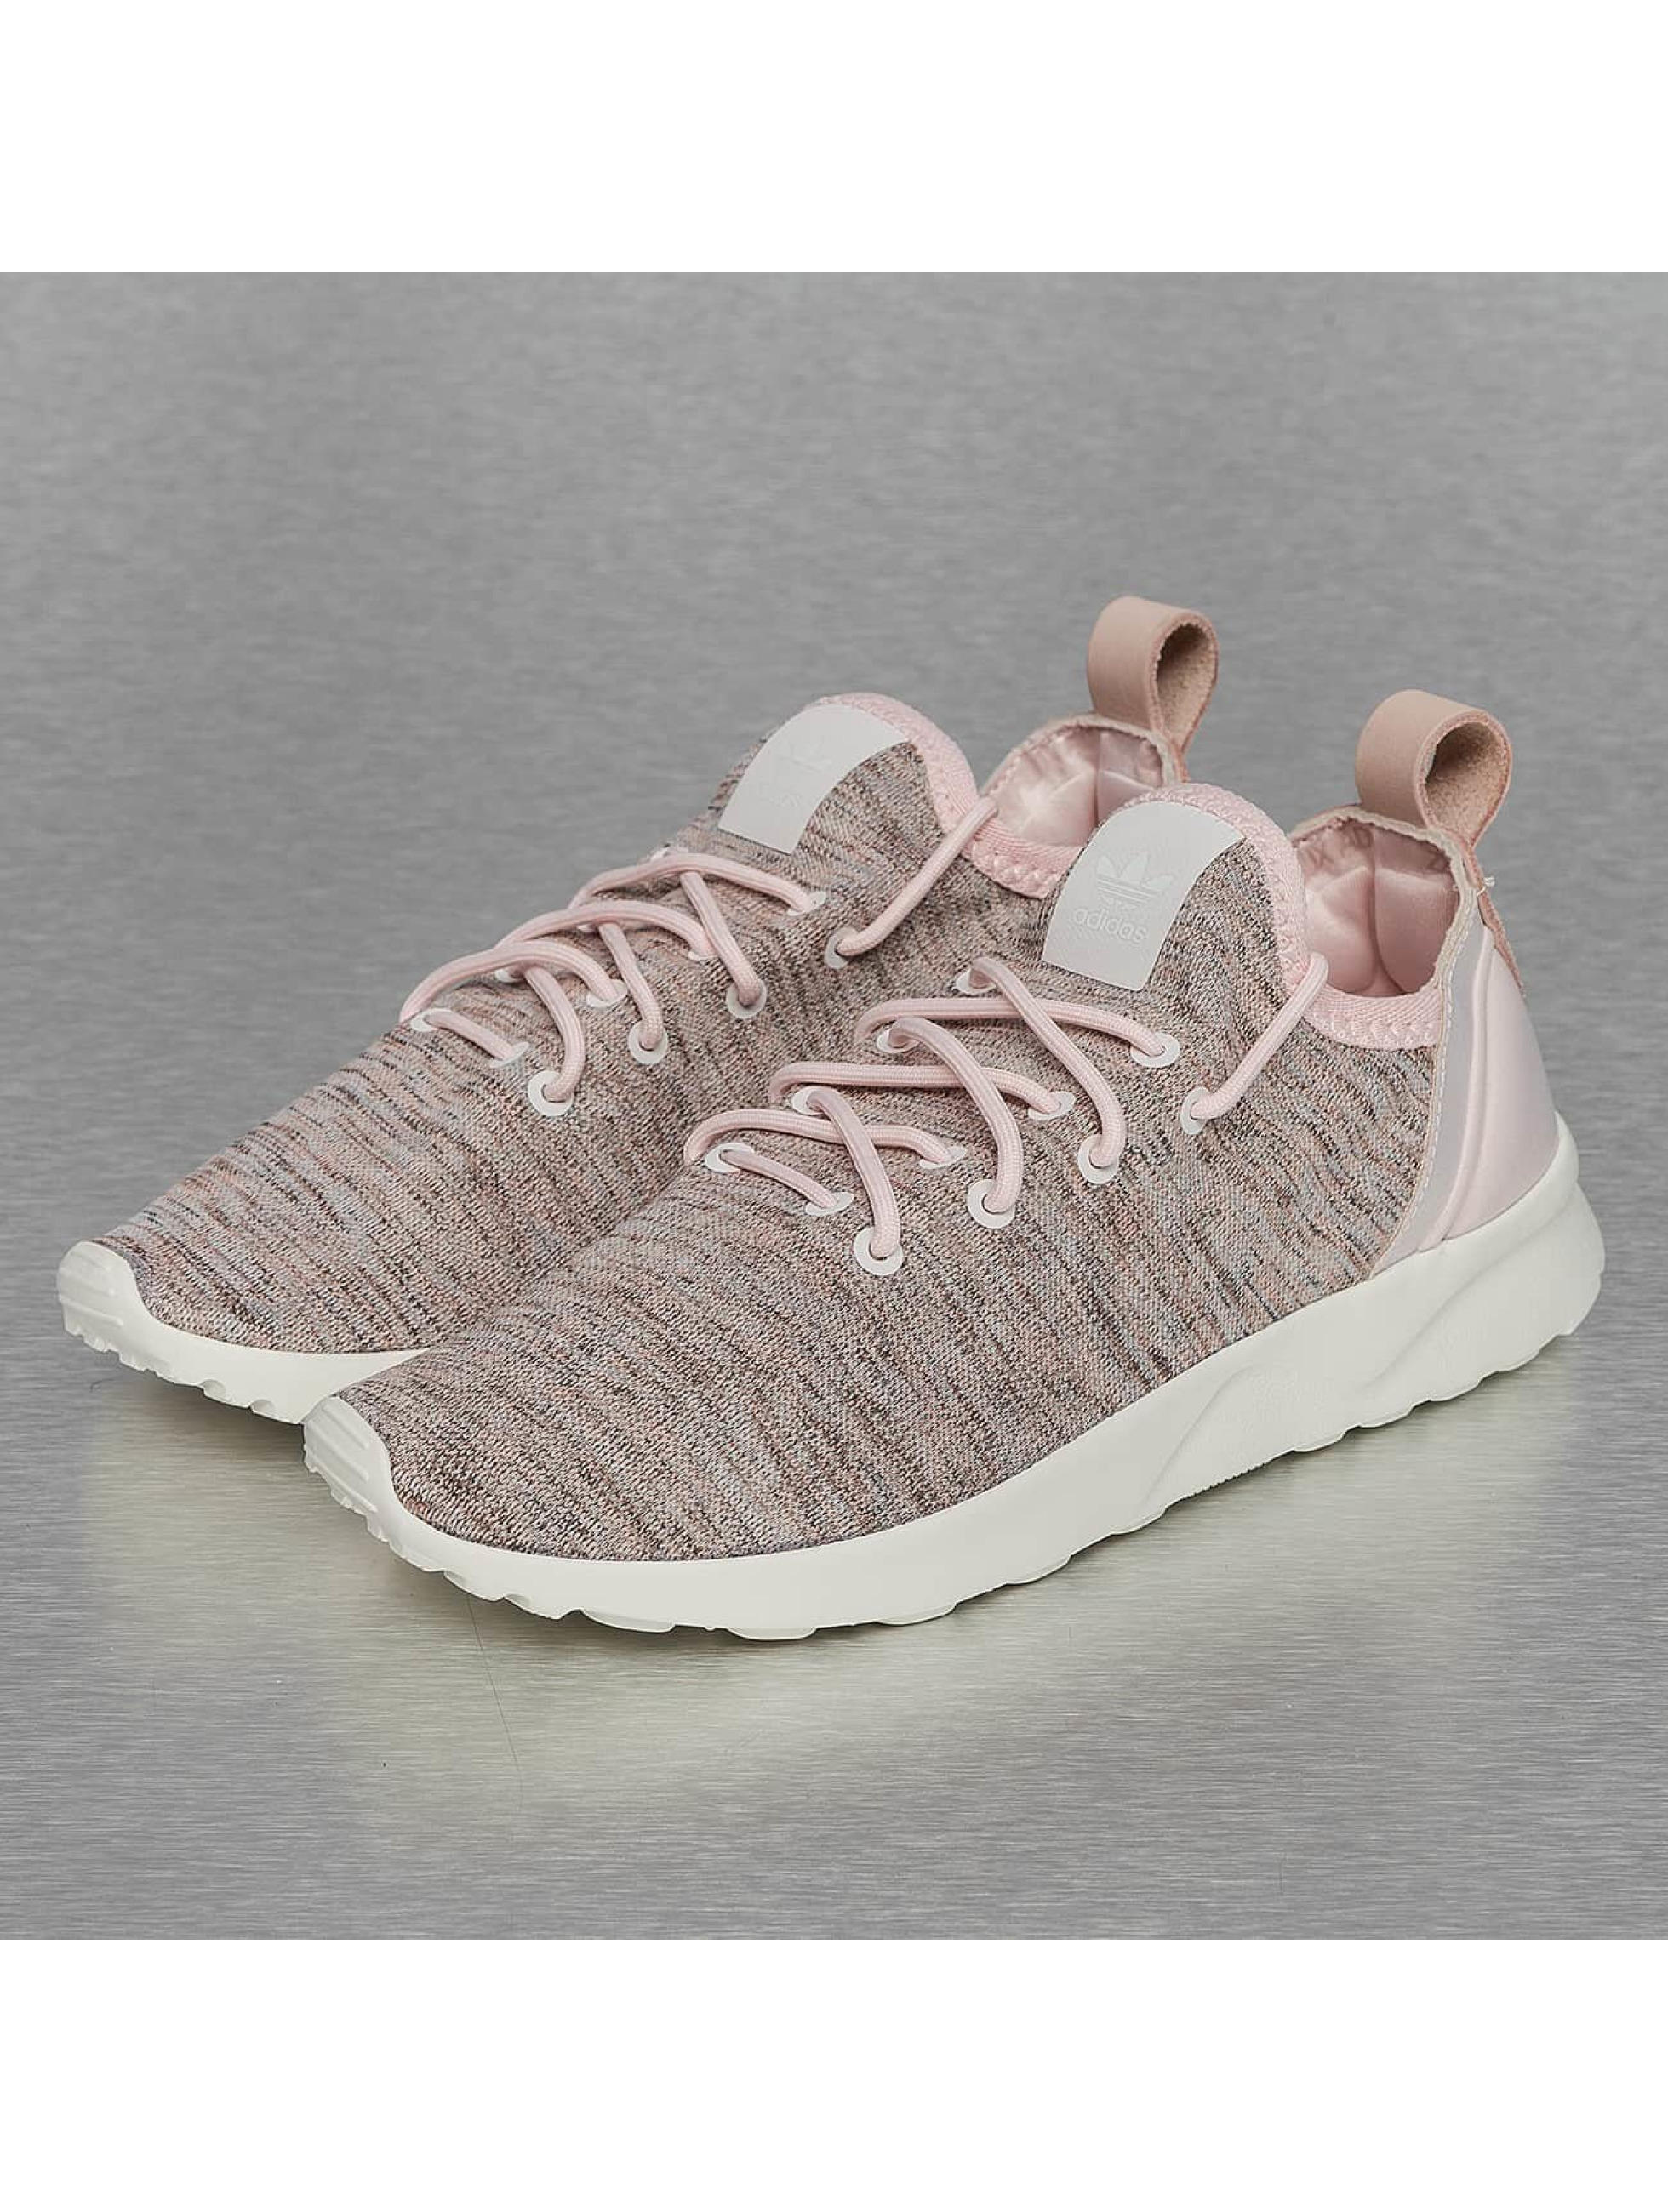 adidas schoen / sneaker ZX Flux ADV Virtue Sock in rose